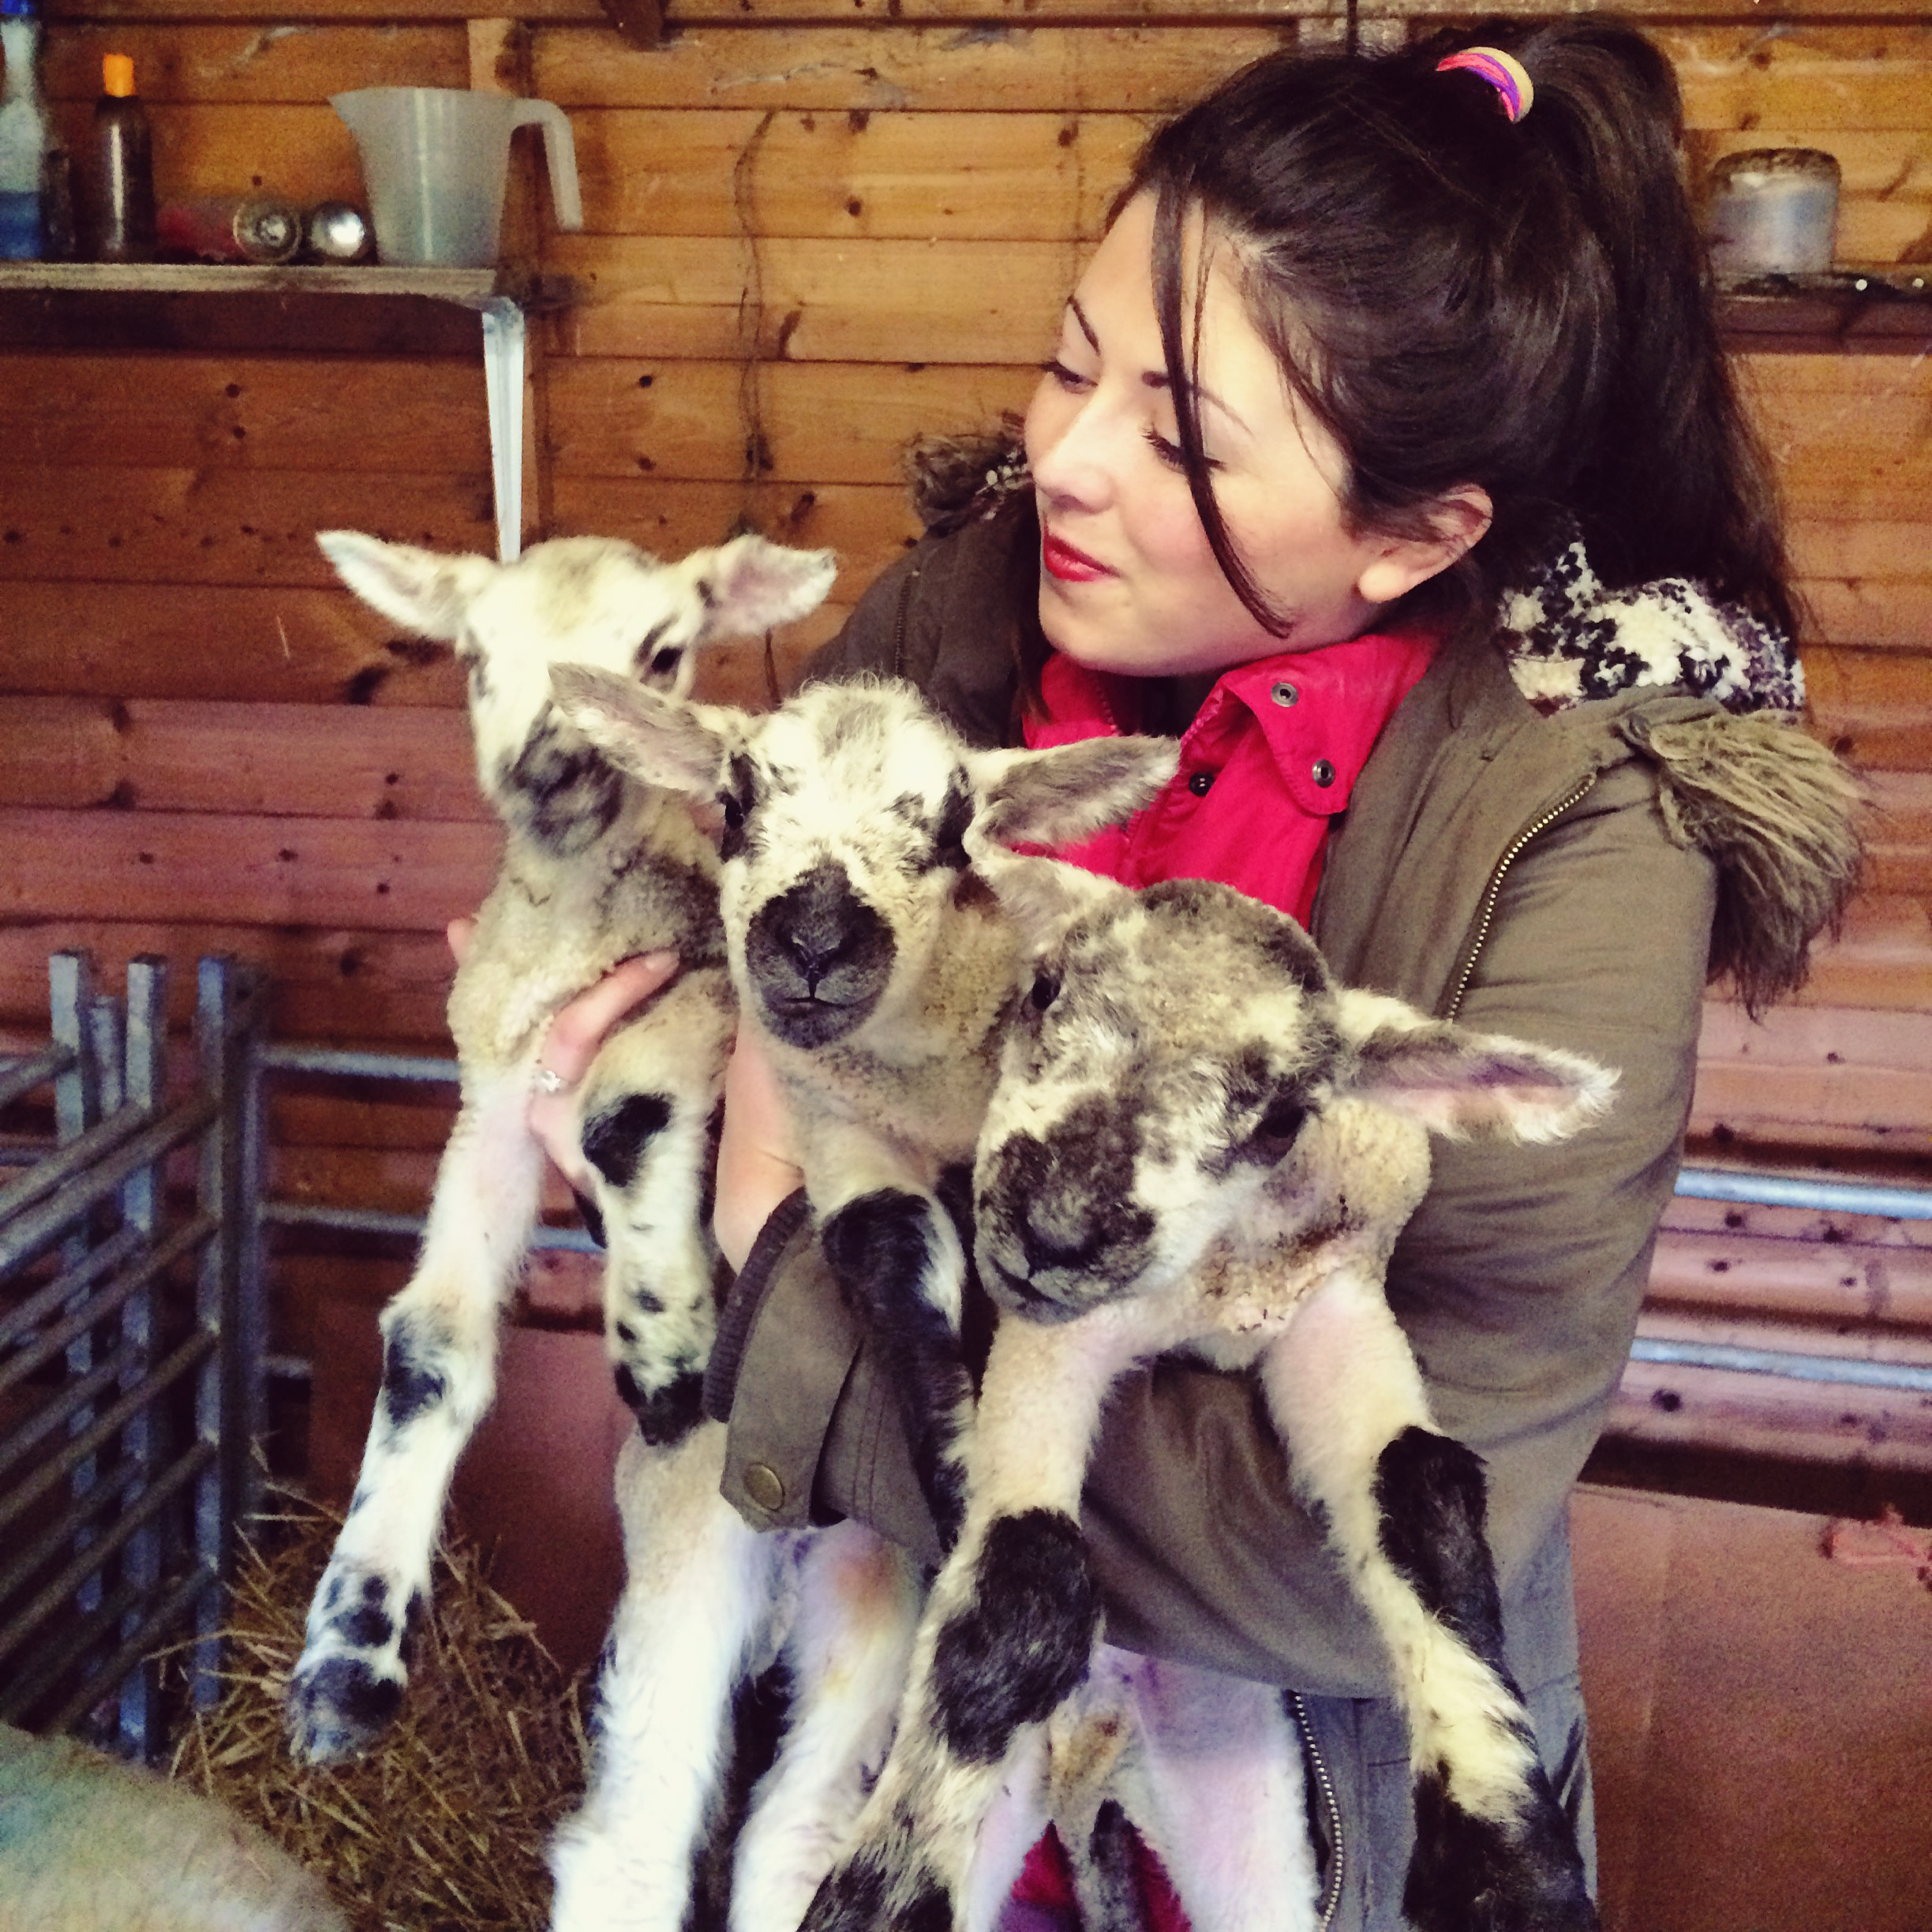 'Team photo'! We brought the triplets into our garden as they were weak and it was cold. I love having cuddles in the garden shed.